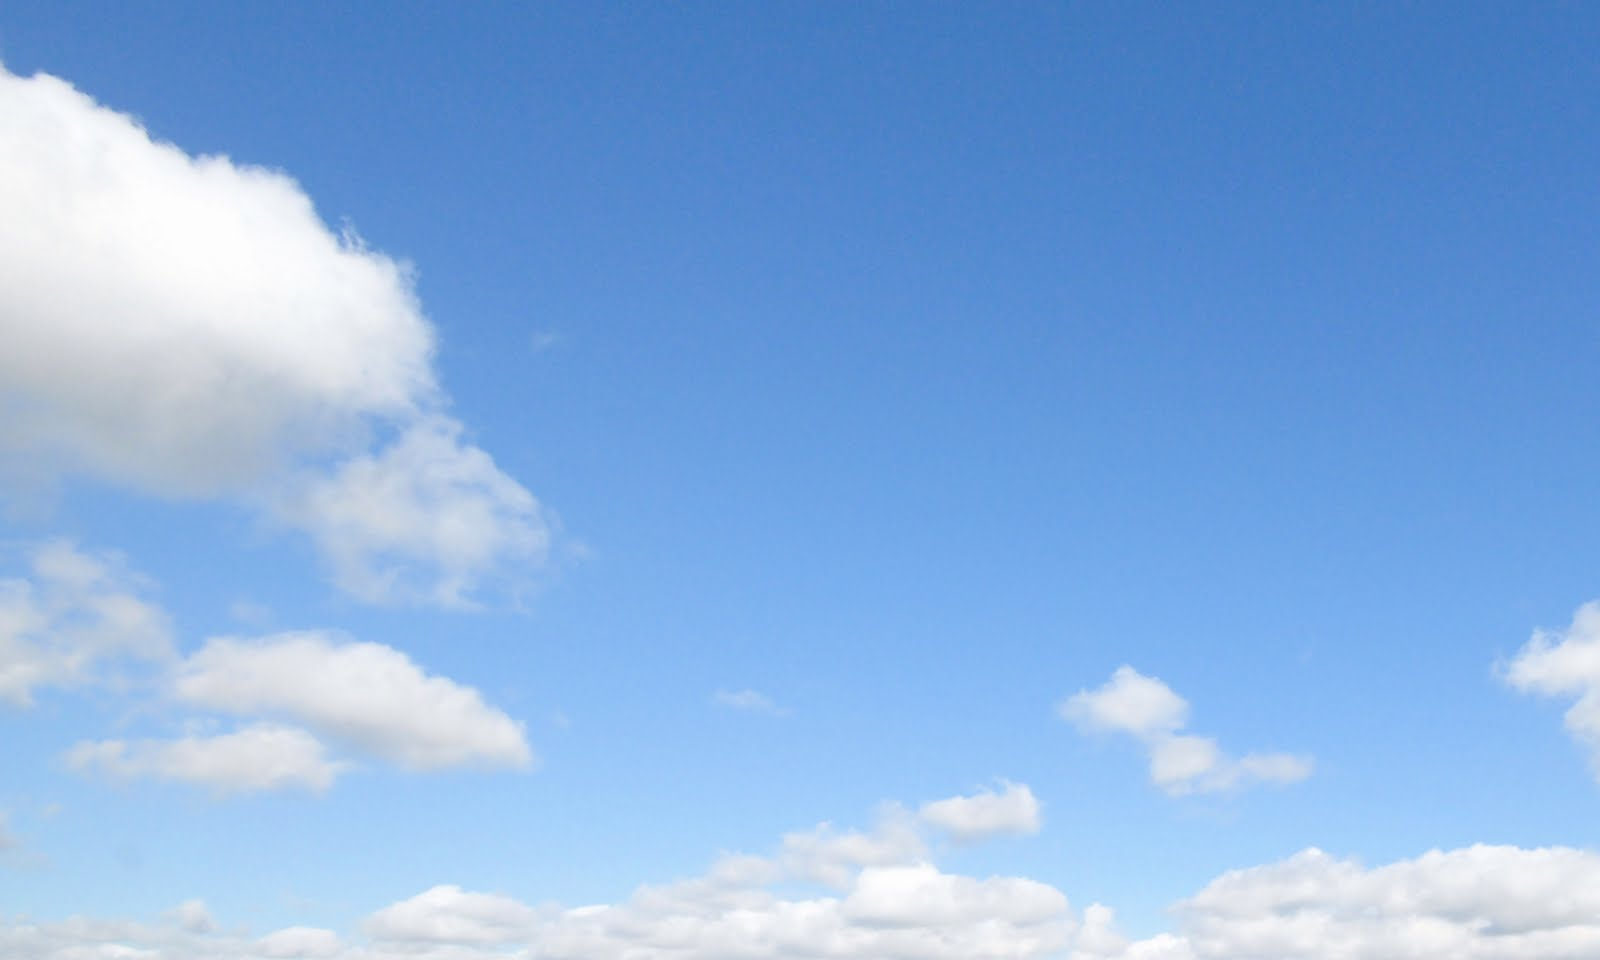 2010-07-25-Bright_Clouds.jpg